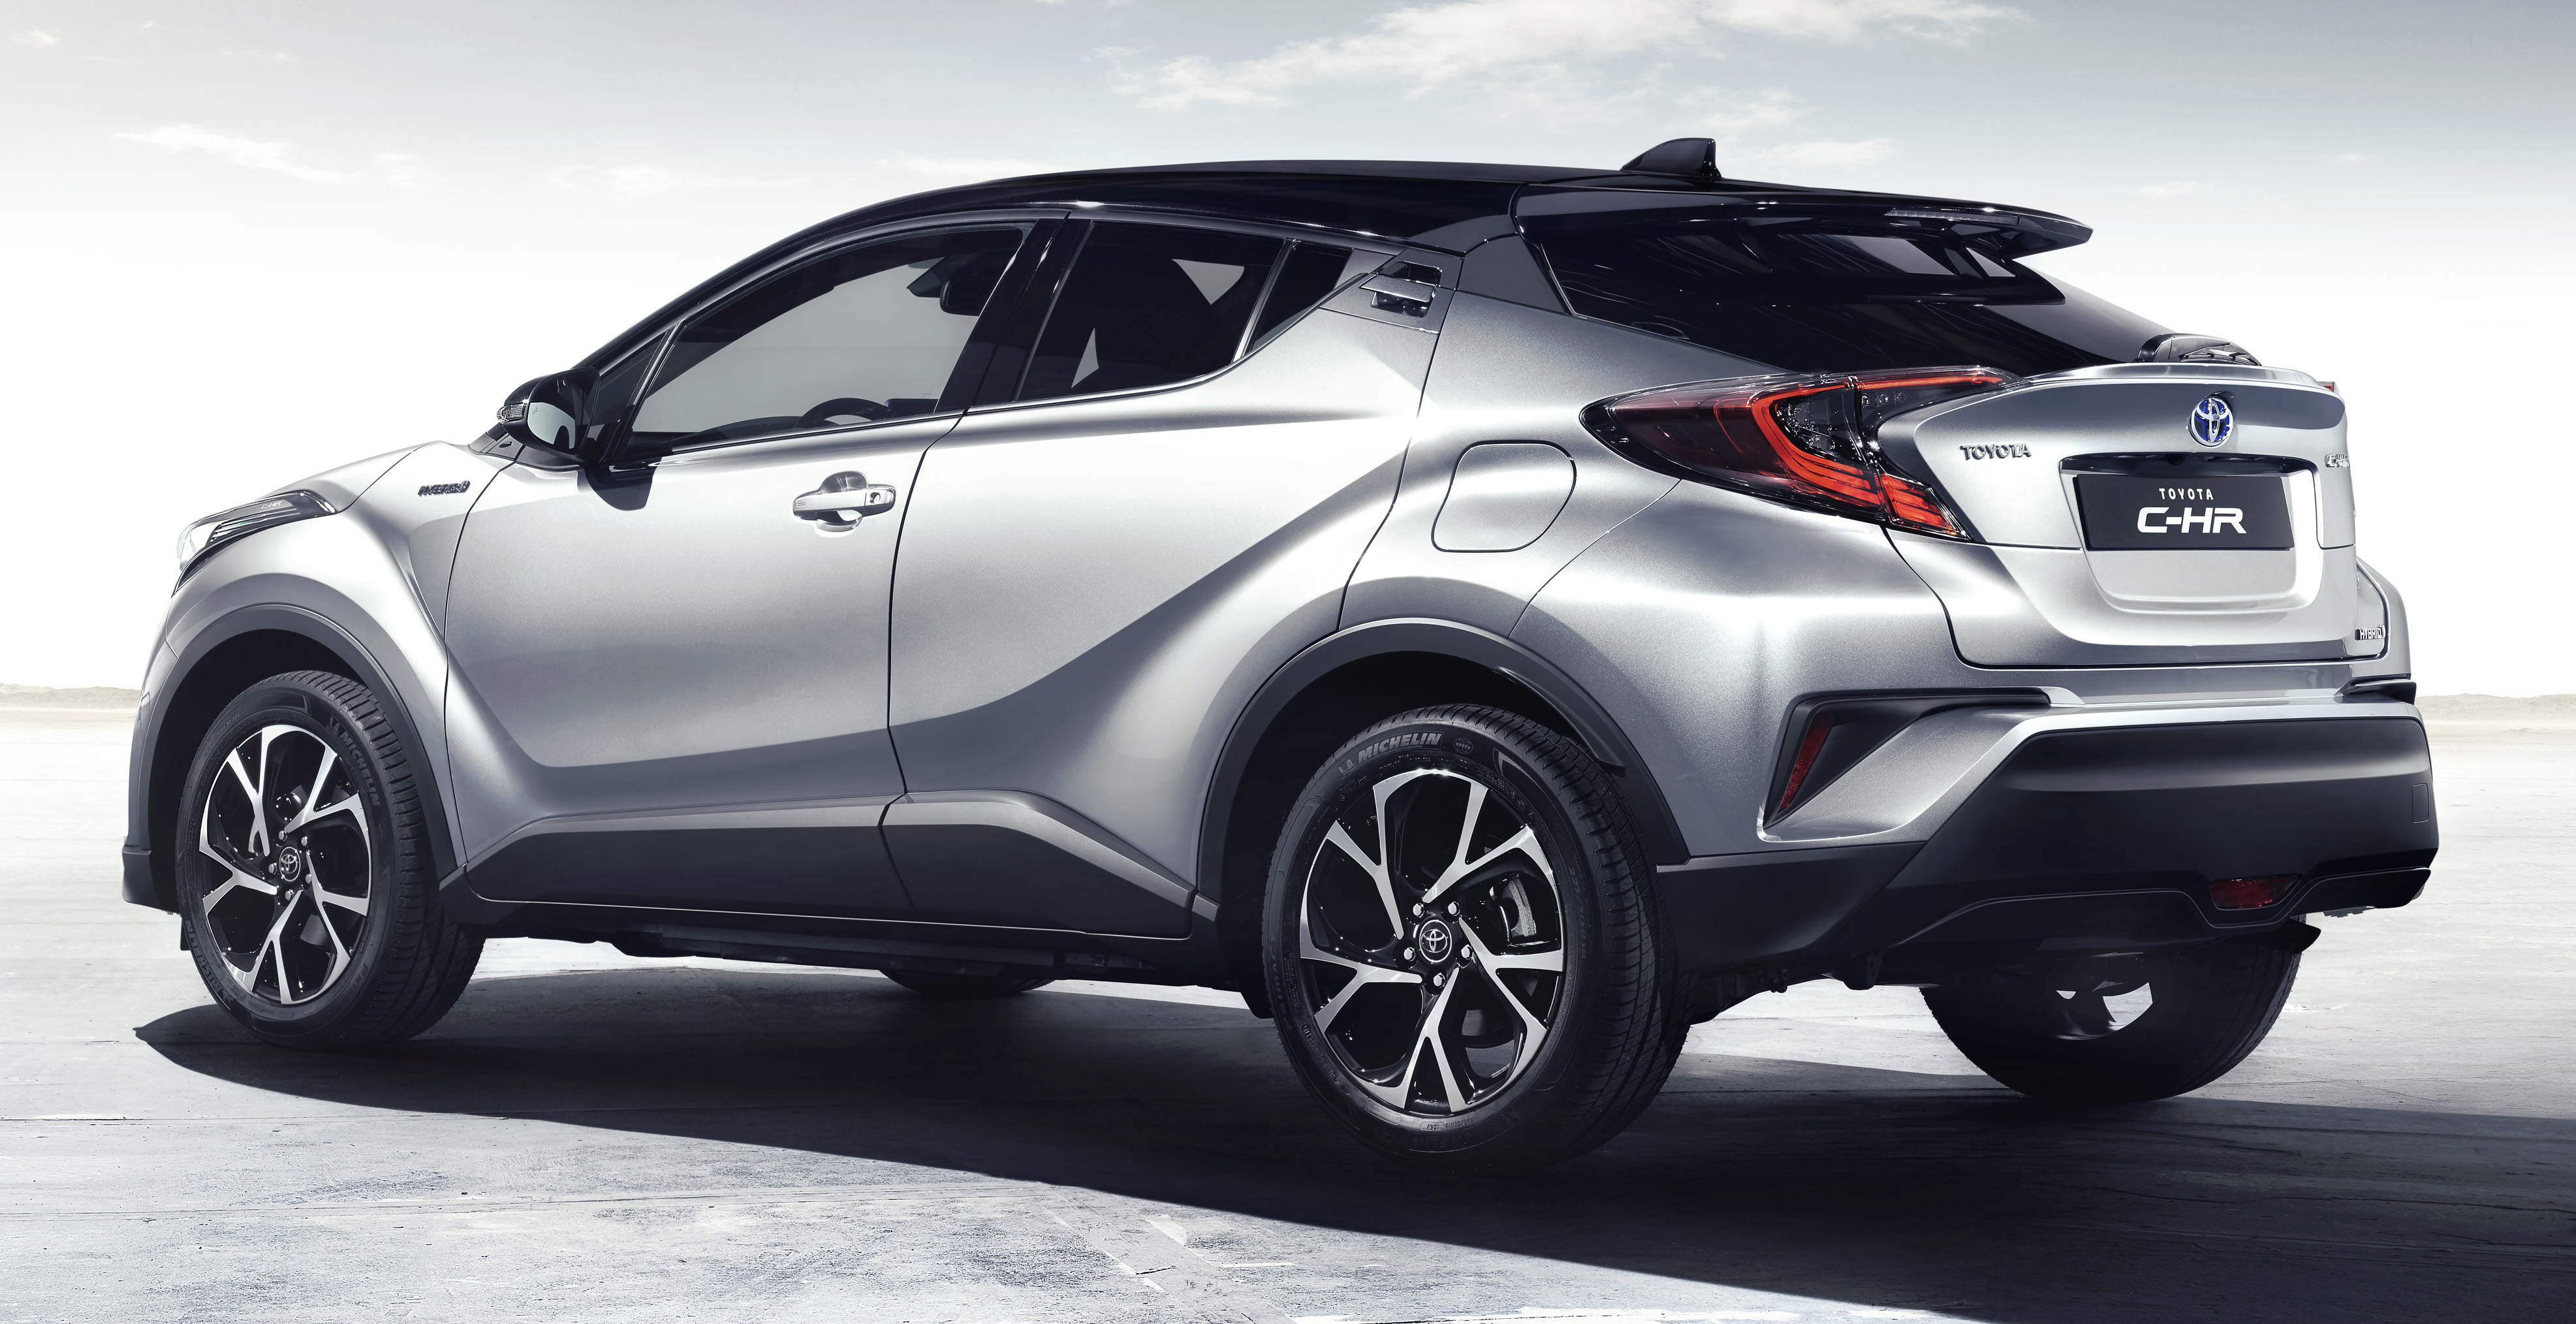 hr in toyota The toyota c-hr (japanese: トヨタ c-hr, toyota shīeichiāru) is a subcompact crossover suv produced by toyota the production of the c-hr started in november 2016.